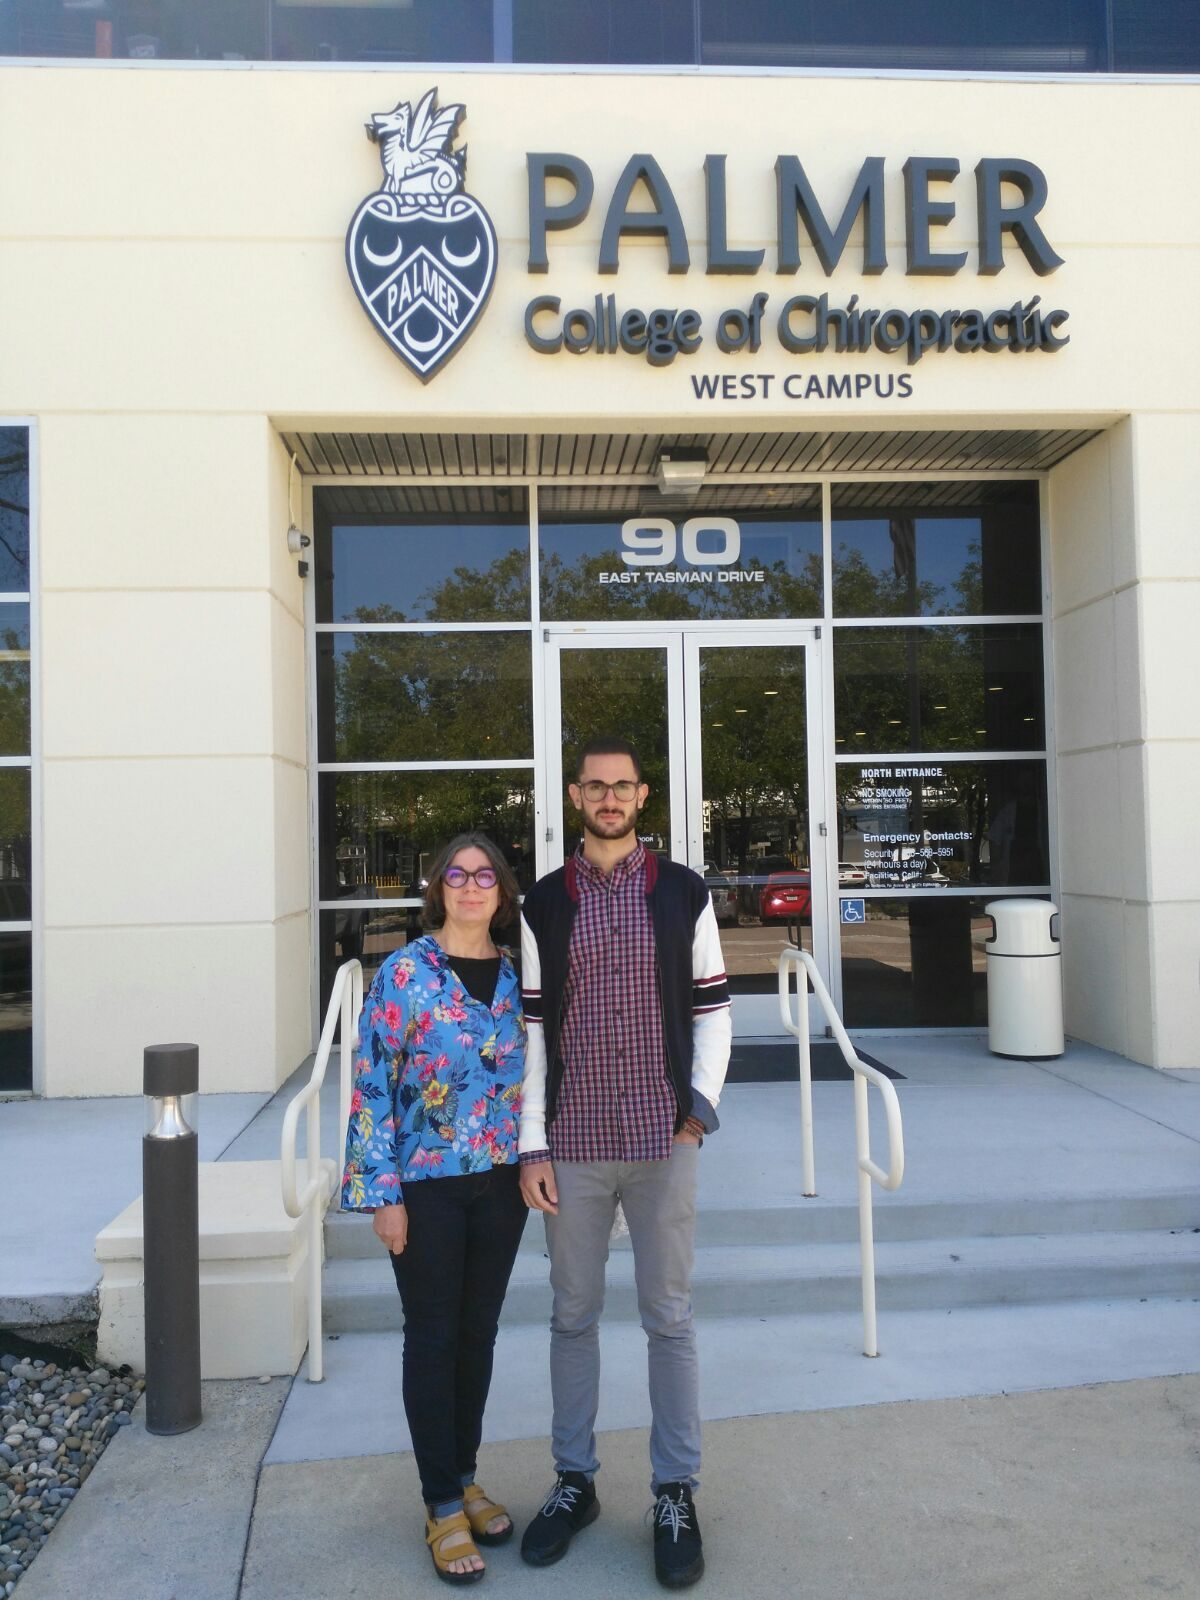 Javier Munoz with his mom at Palmer College of Chiropractic